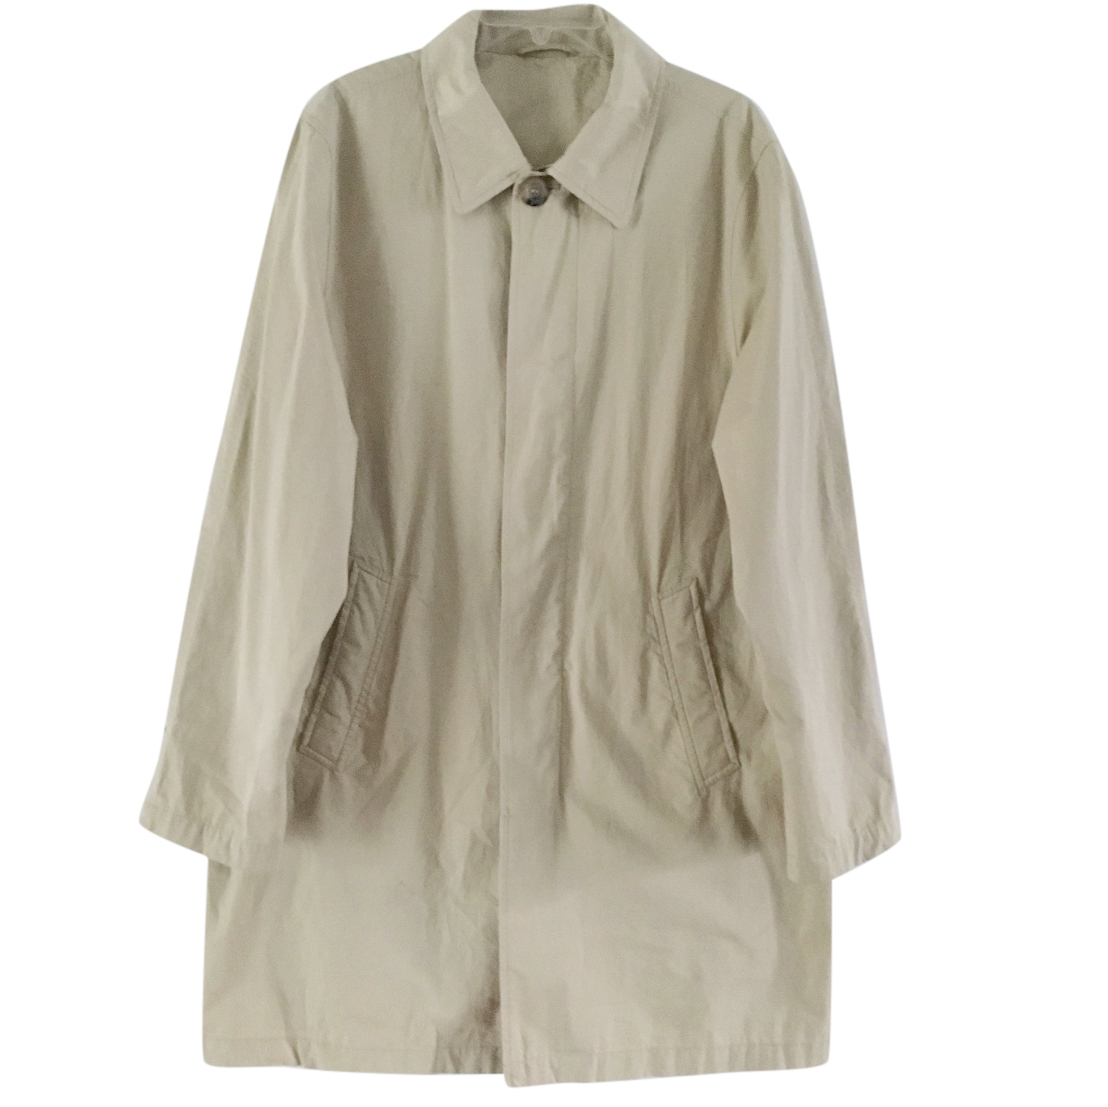 Massimo Dutti men's trench coat